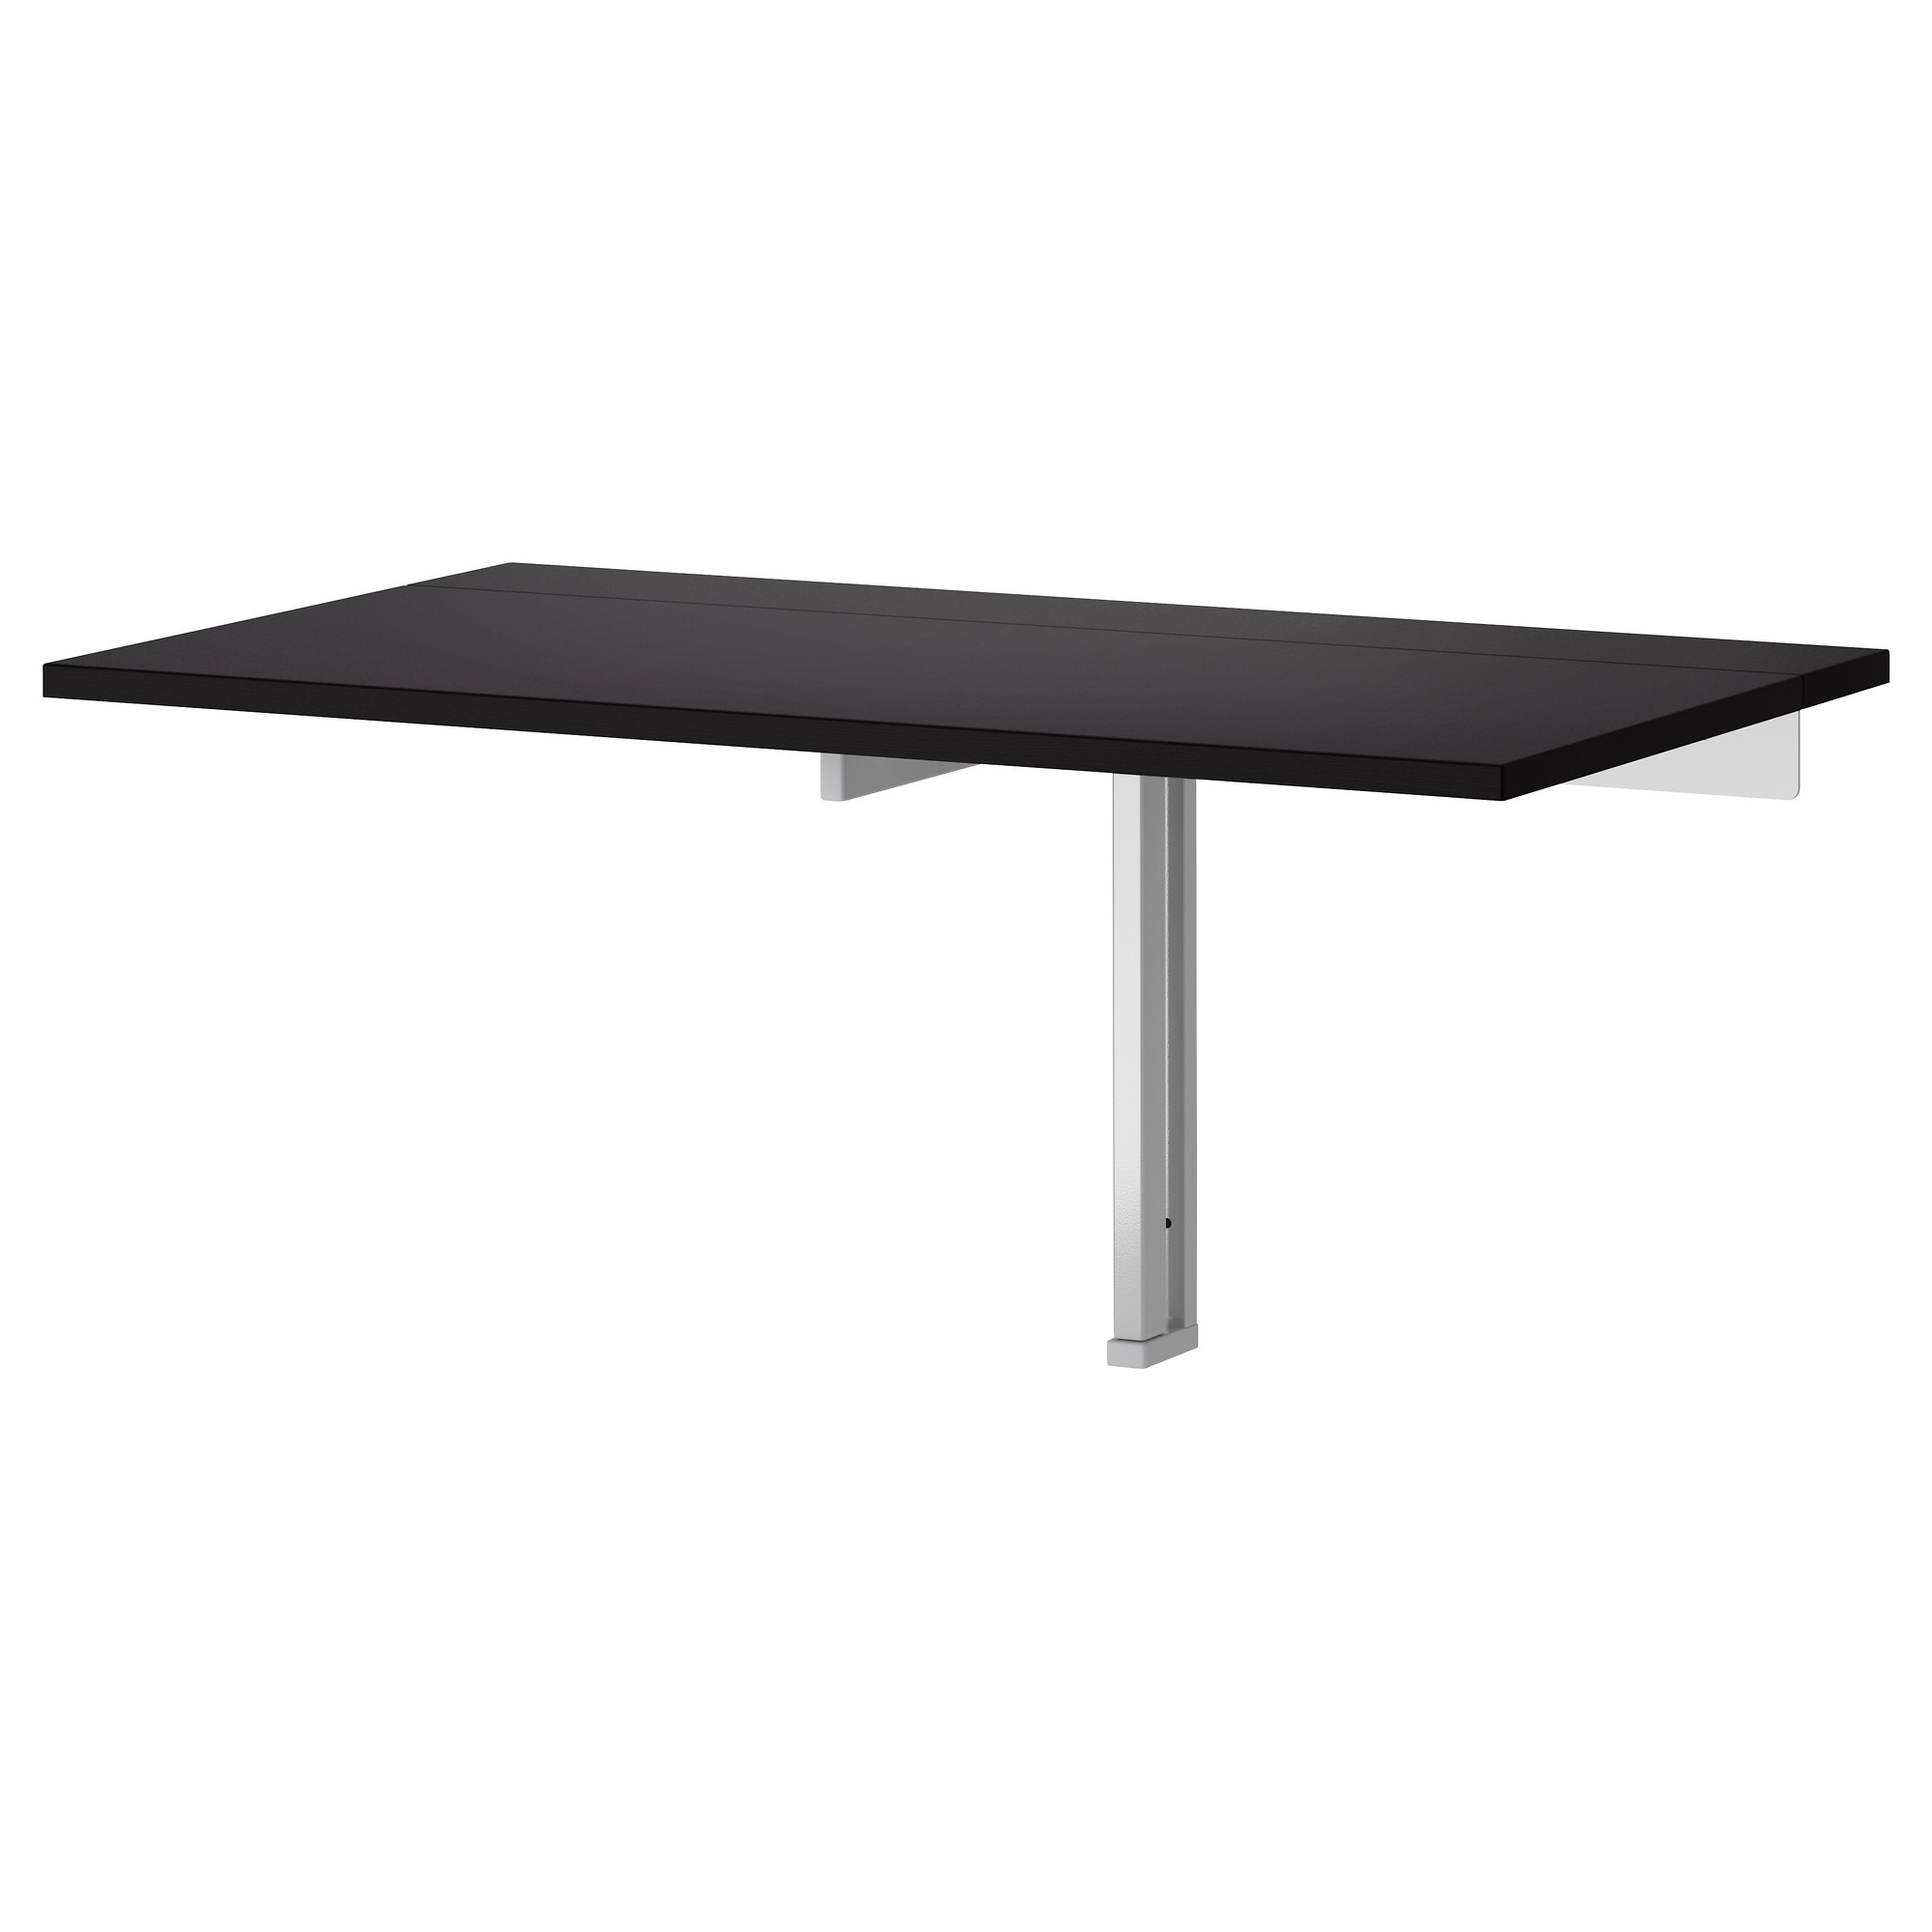 Charmant BJURSTA Wall Mounted Drop Leaf Table   IKEA